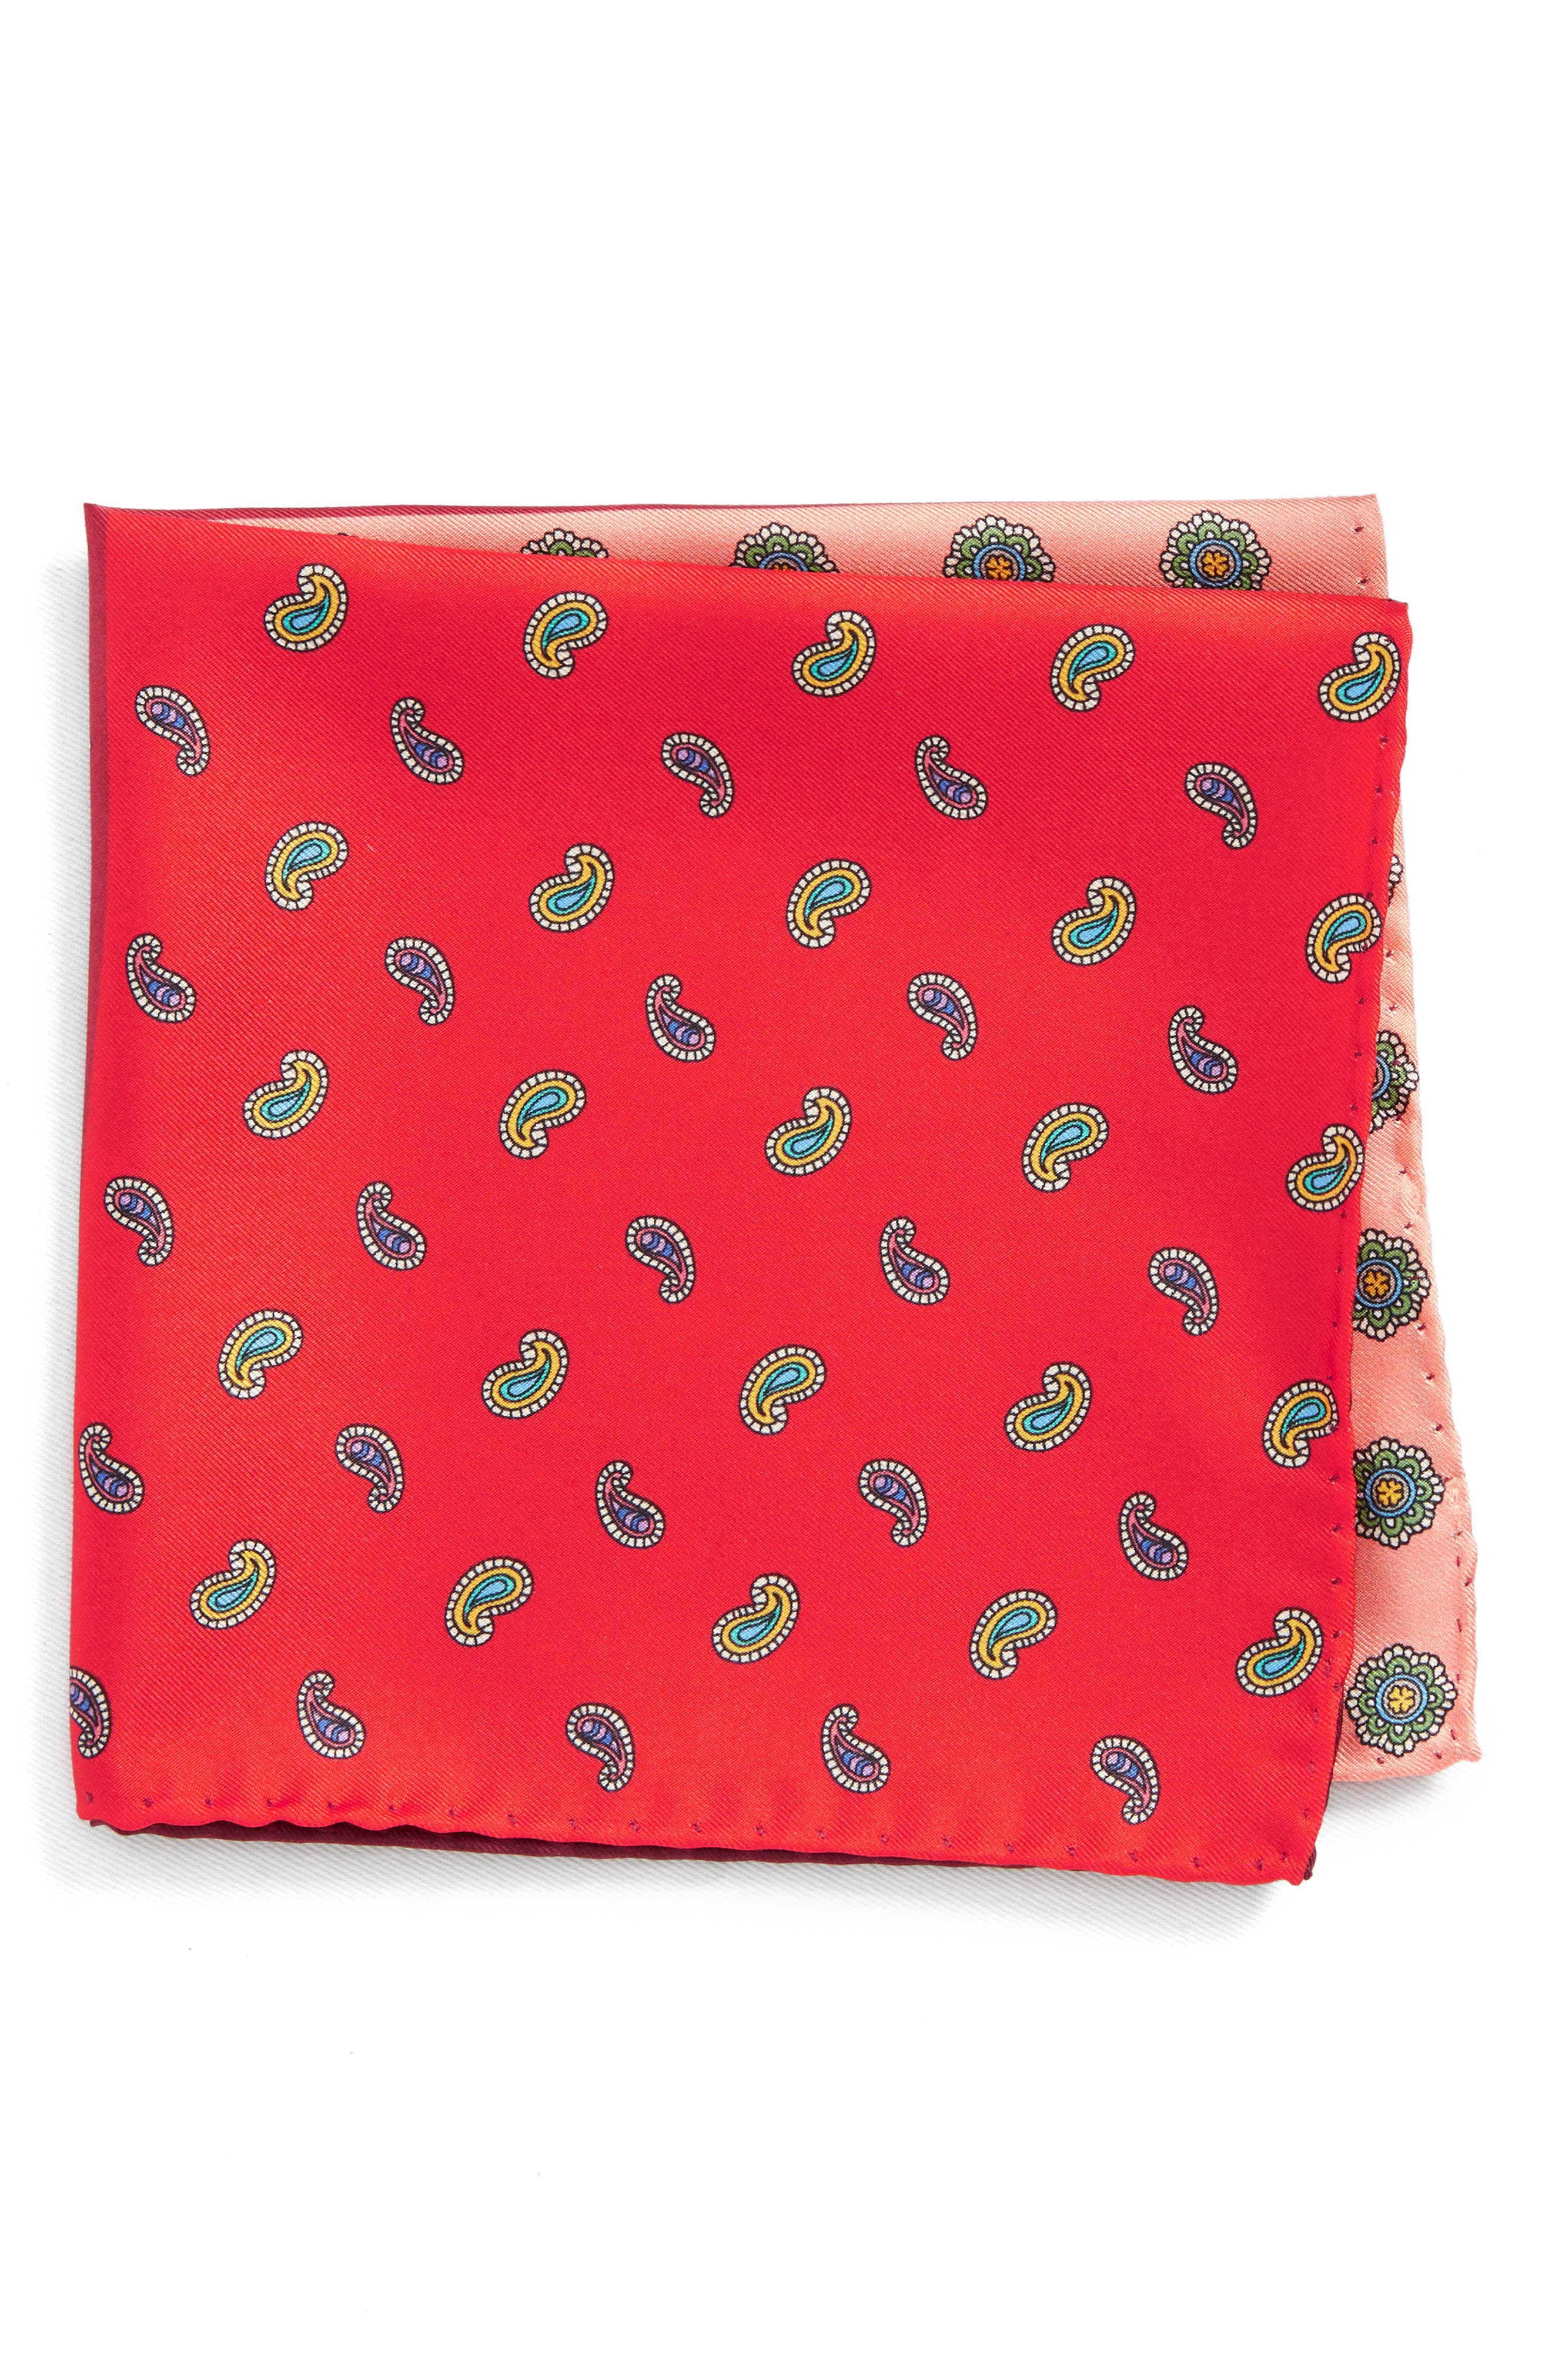 Four Panel Silk Pocket Square,                         Main,                         color, Red